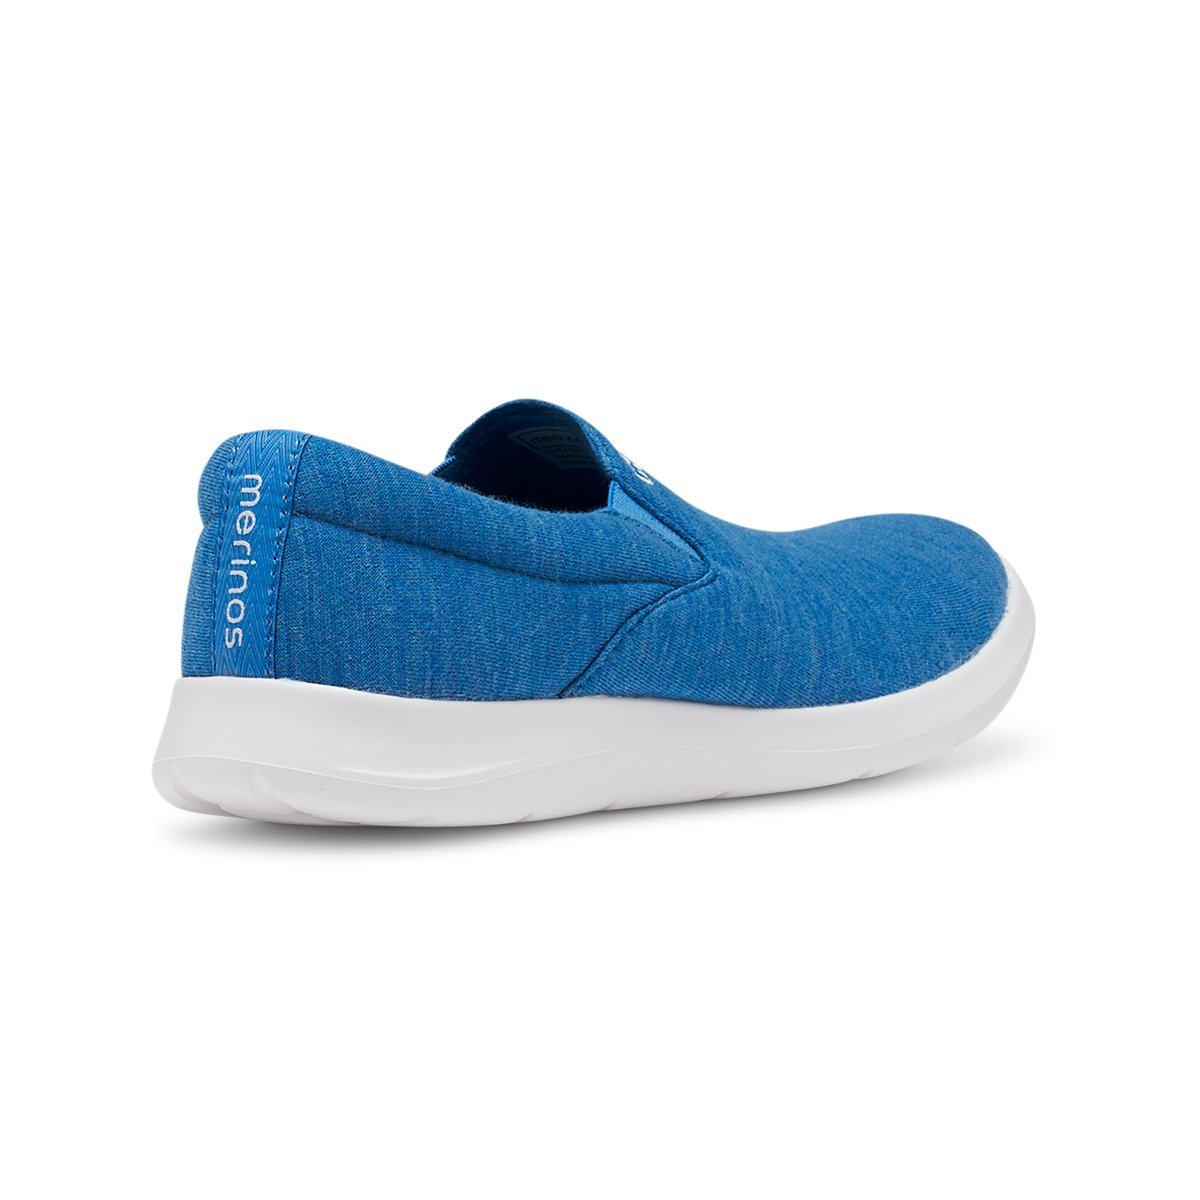 Women's Slip-Ons Bright Blue